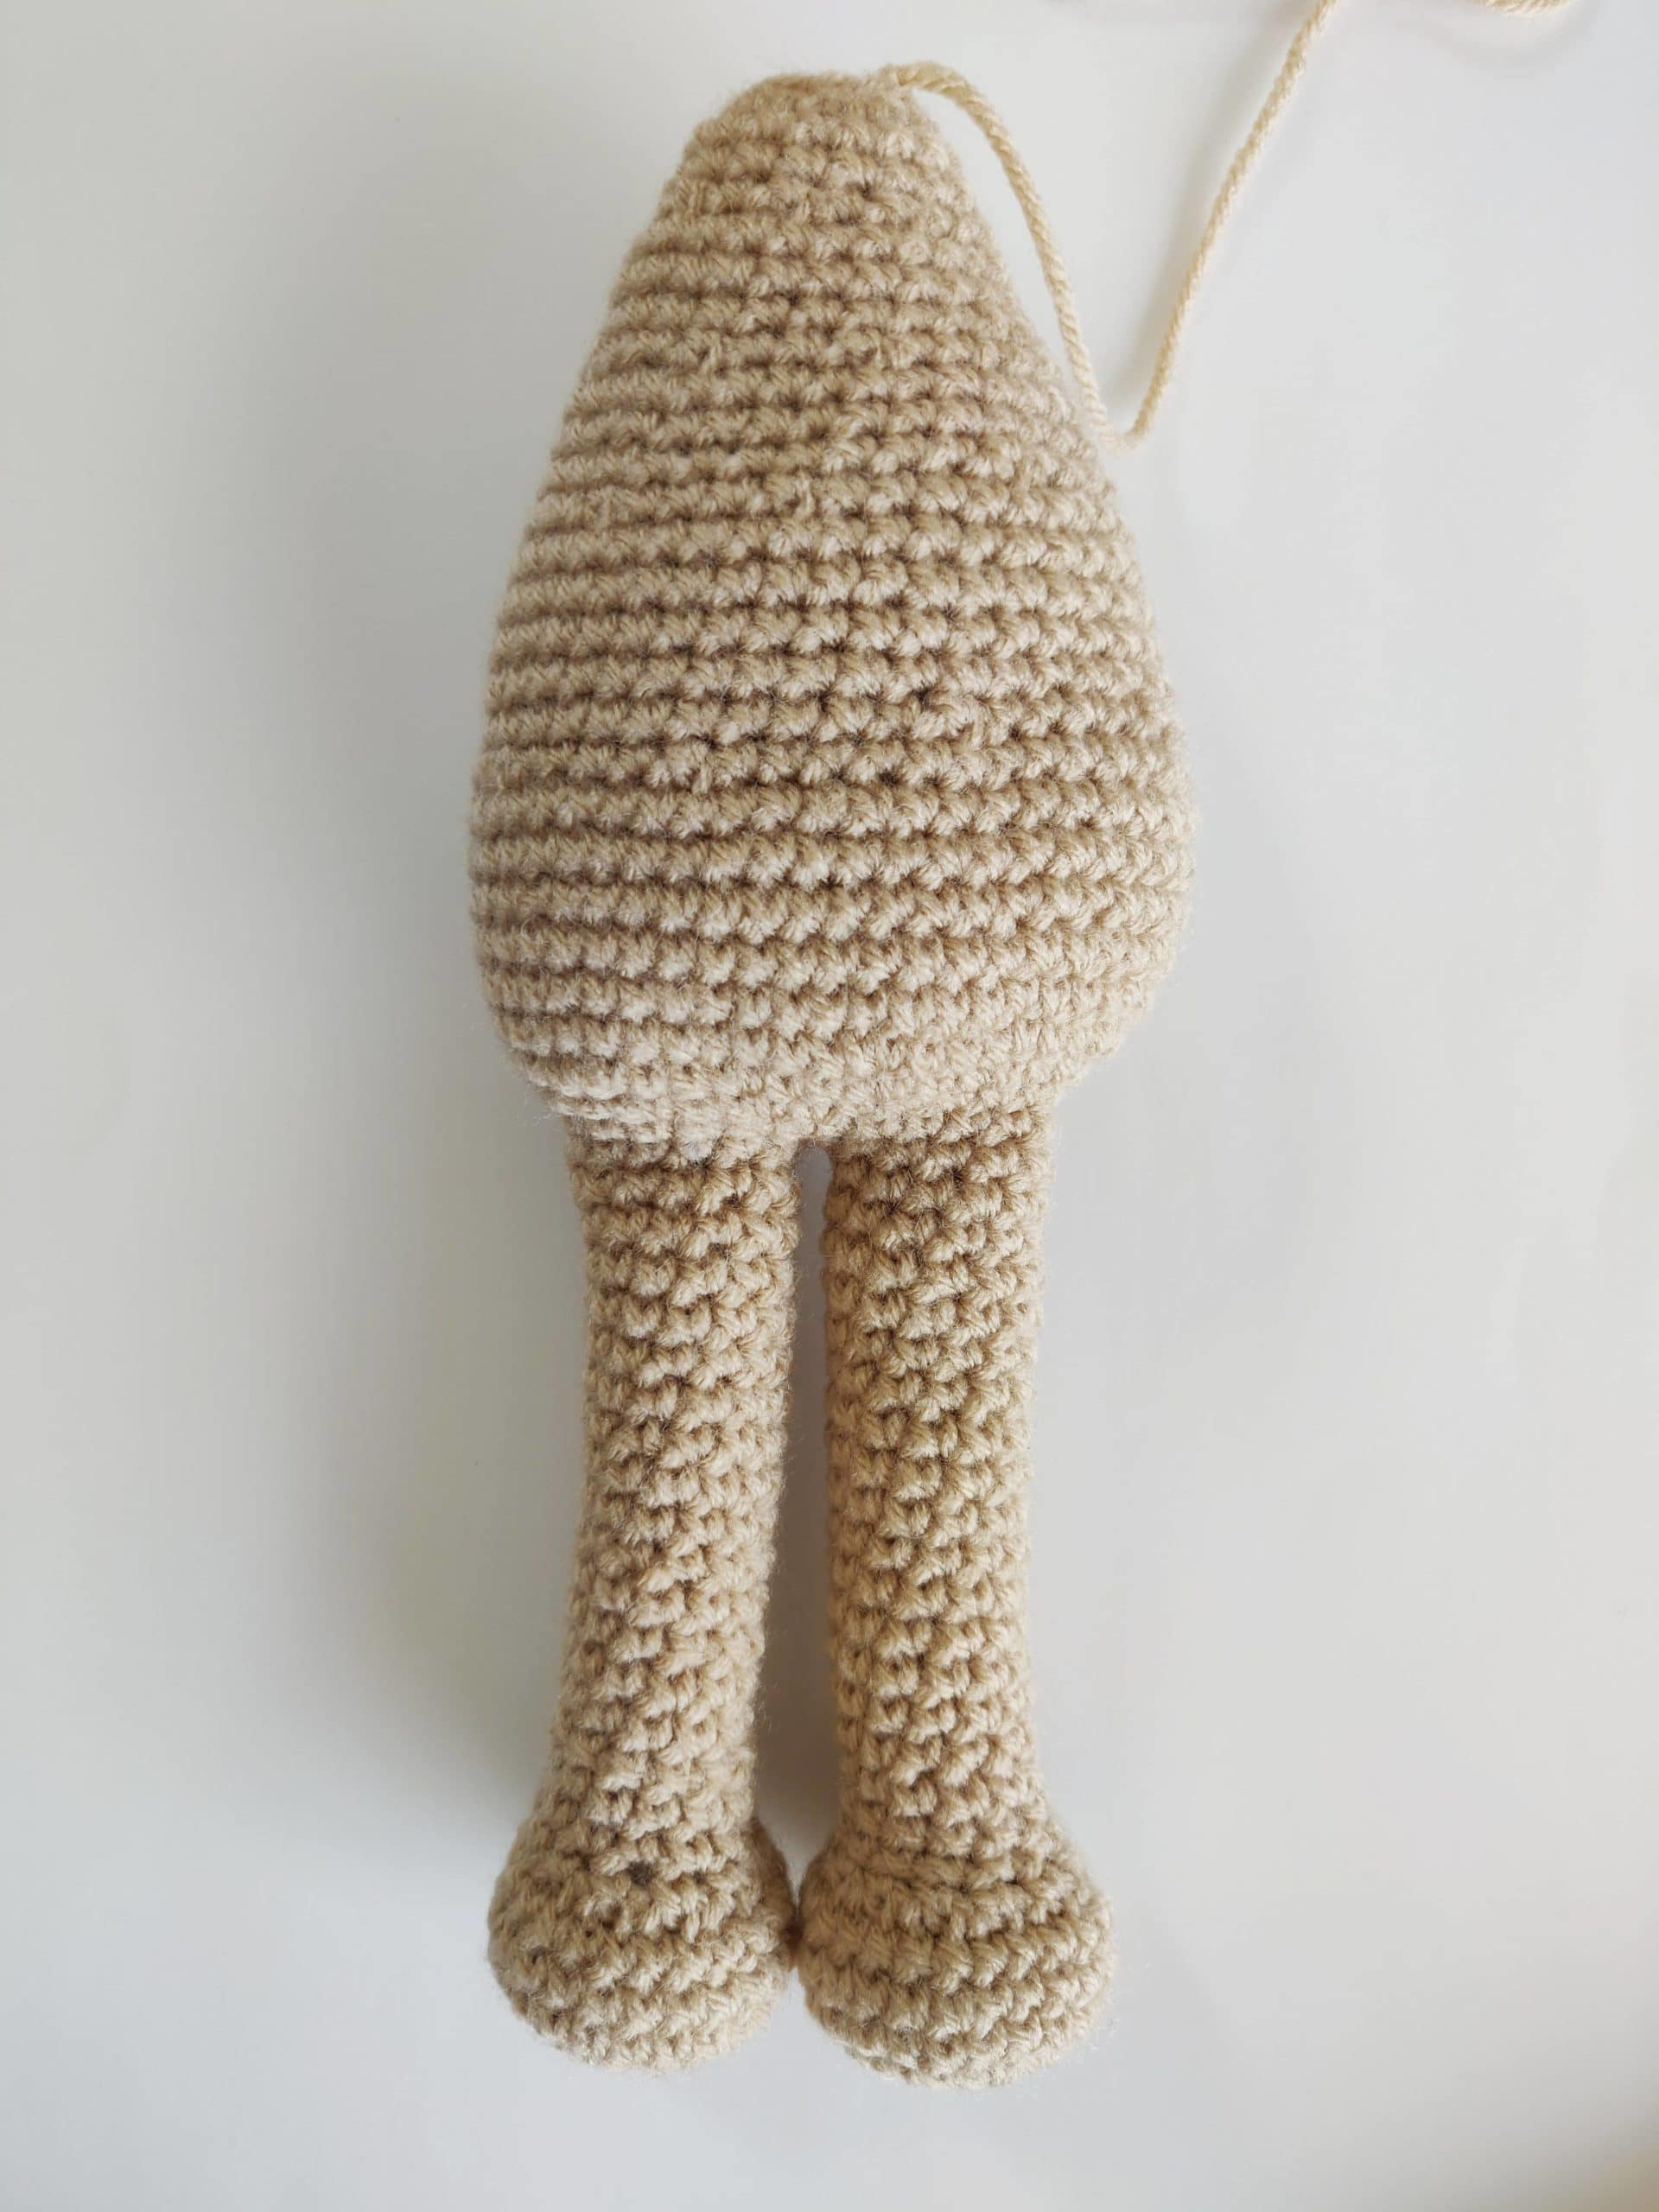 Crochet legs and body of snuggle pup